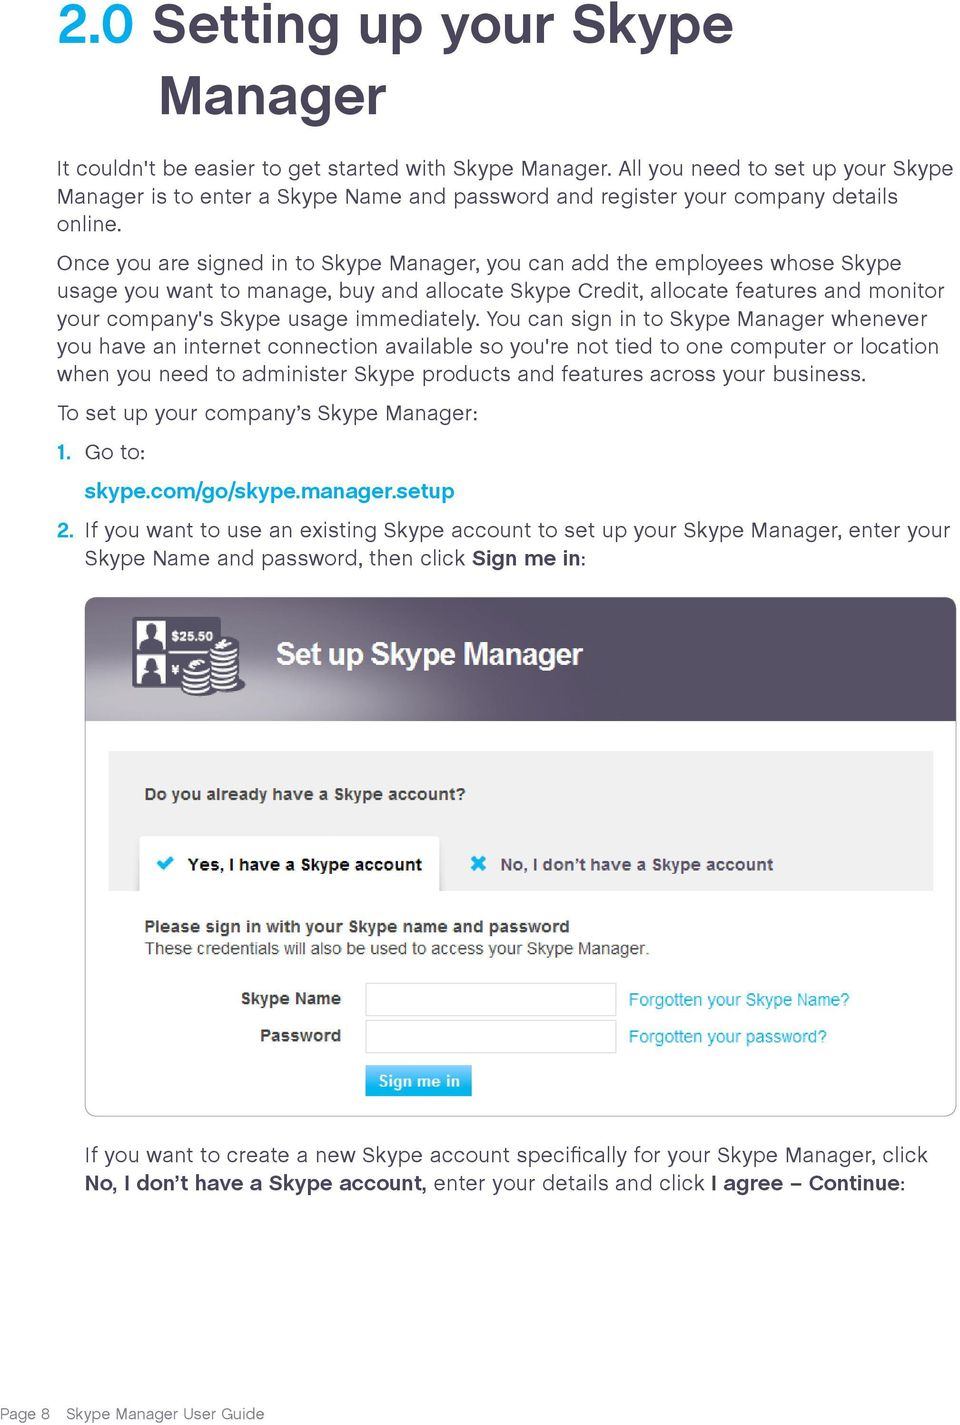 Once you are signed in to Skype Manager, you can add the employees whose Skype usage you want to manage, buy and allocate Skype Credit, allocate features and monitor your company's Skype usage